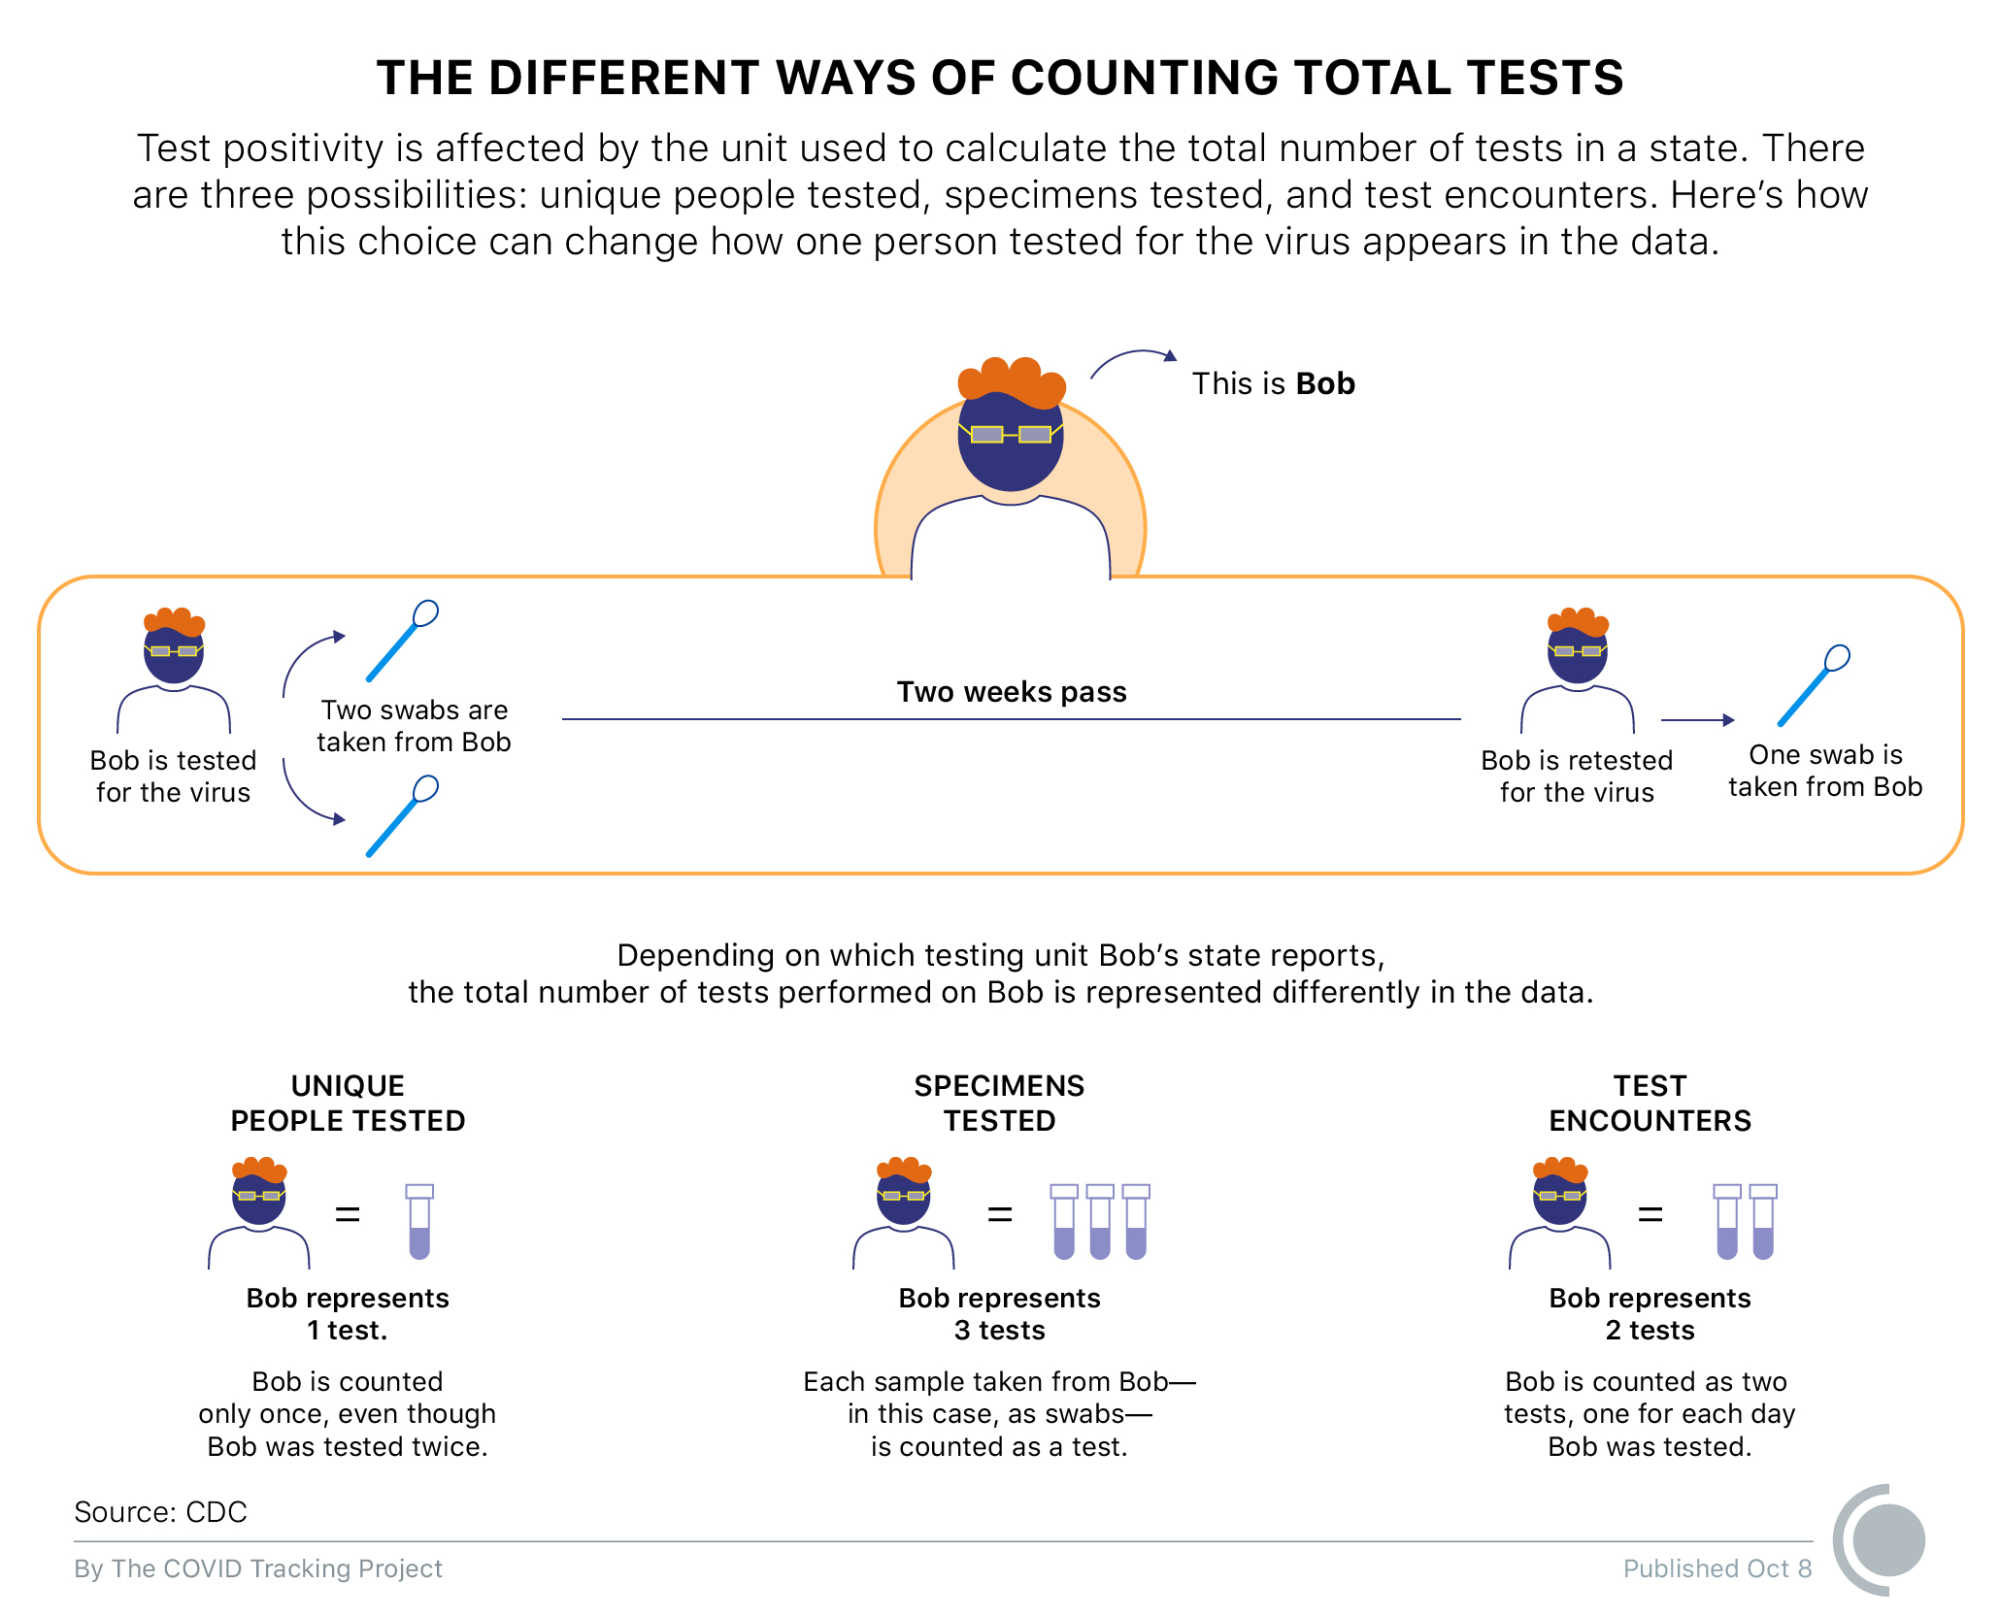 Graphic depicting the three different ways states are counting total tests. A single person's test journey usually involves three test swabs, two swabs initially and then a third swab to follow-up after two weeks. For this single person's test journey, a state may report this as 1 test (for unique people tested), 3 tests (for specimens tested), or 2 tests (for number of test encounters).